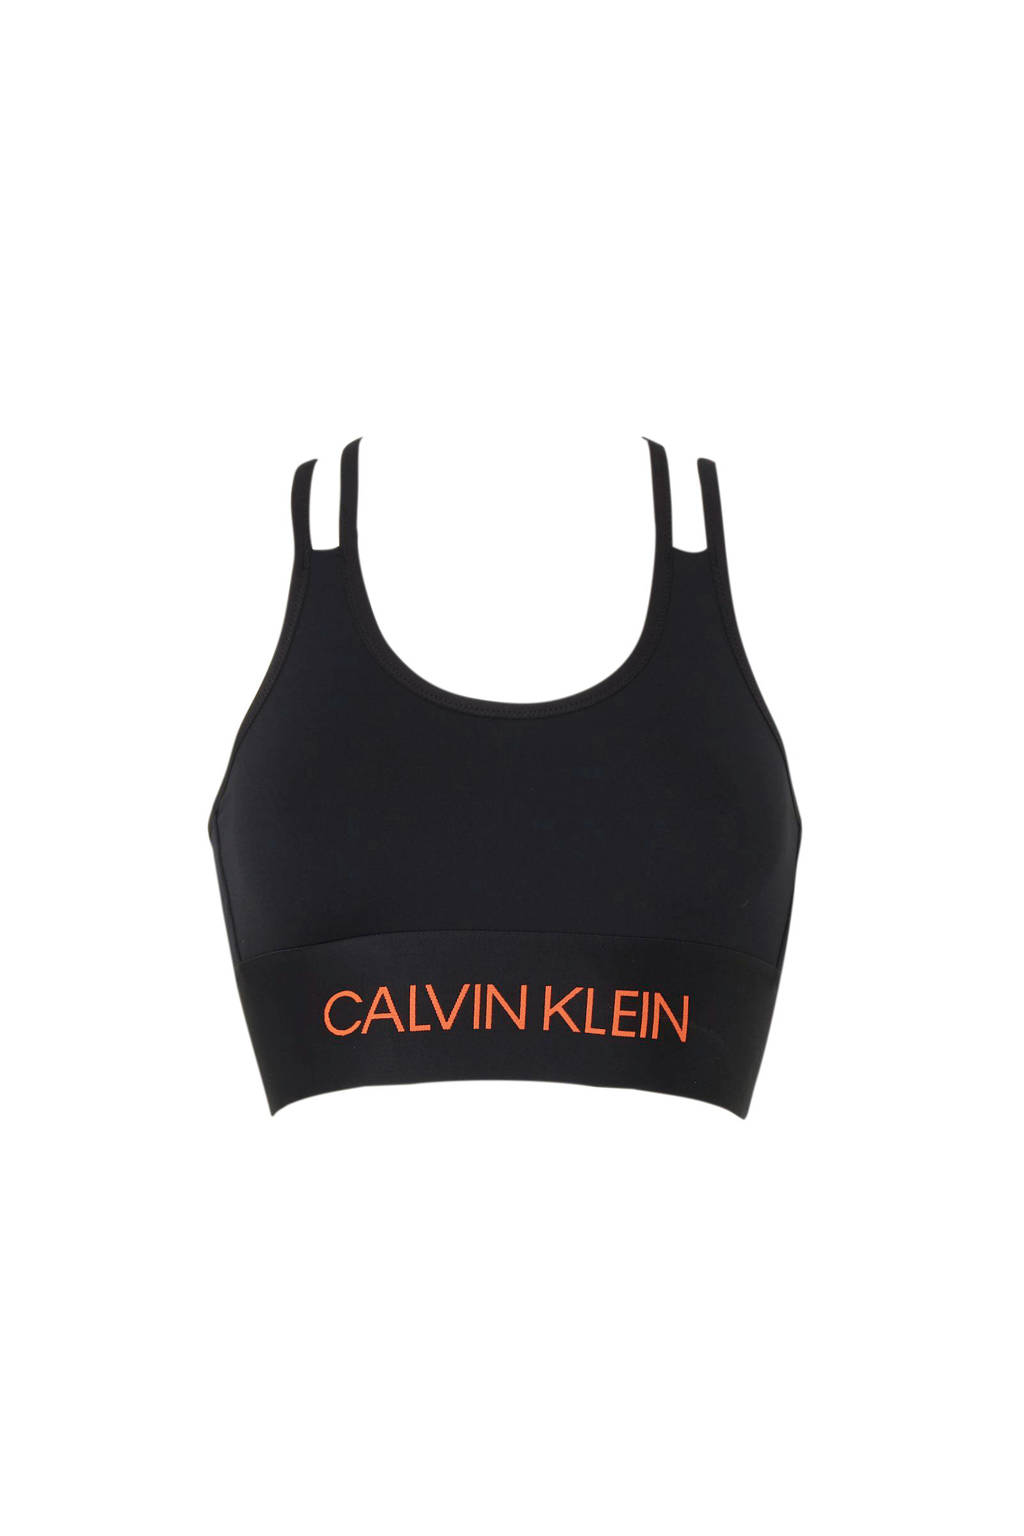 Calvin Klein Performance Level 1 sportbh zwart, Zwart/rood